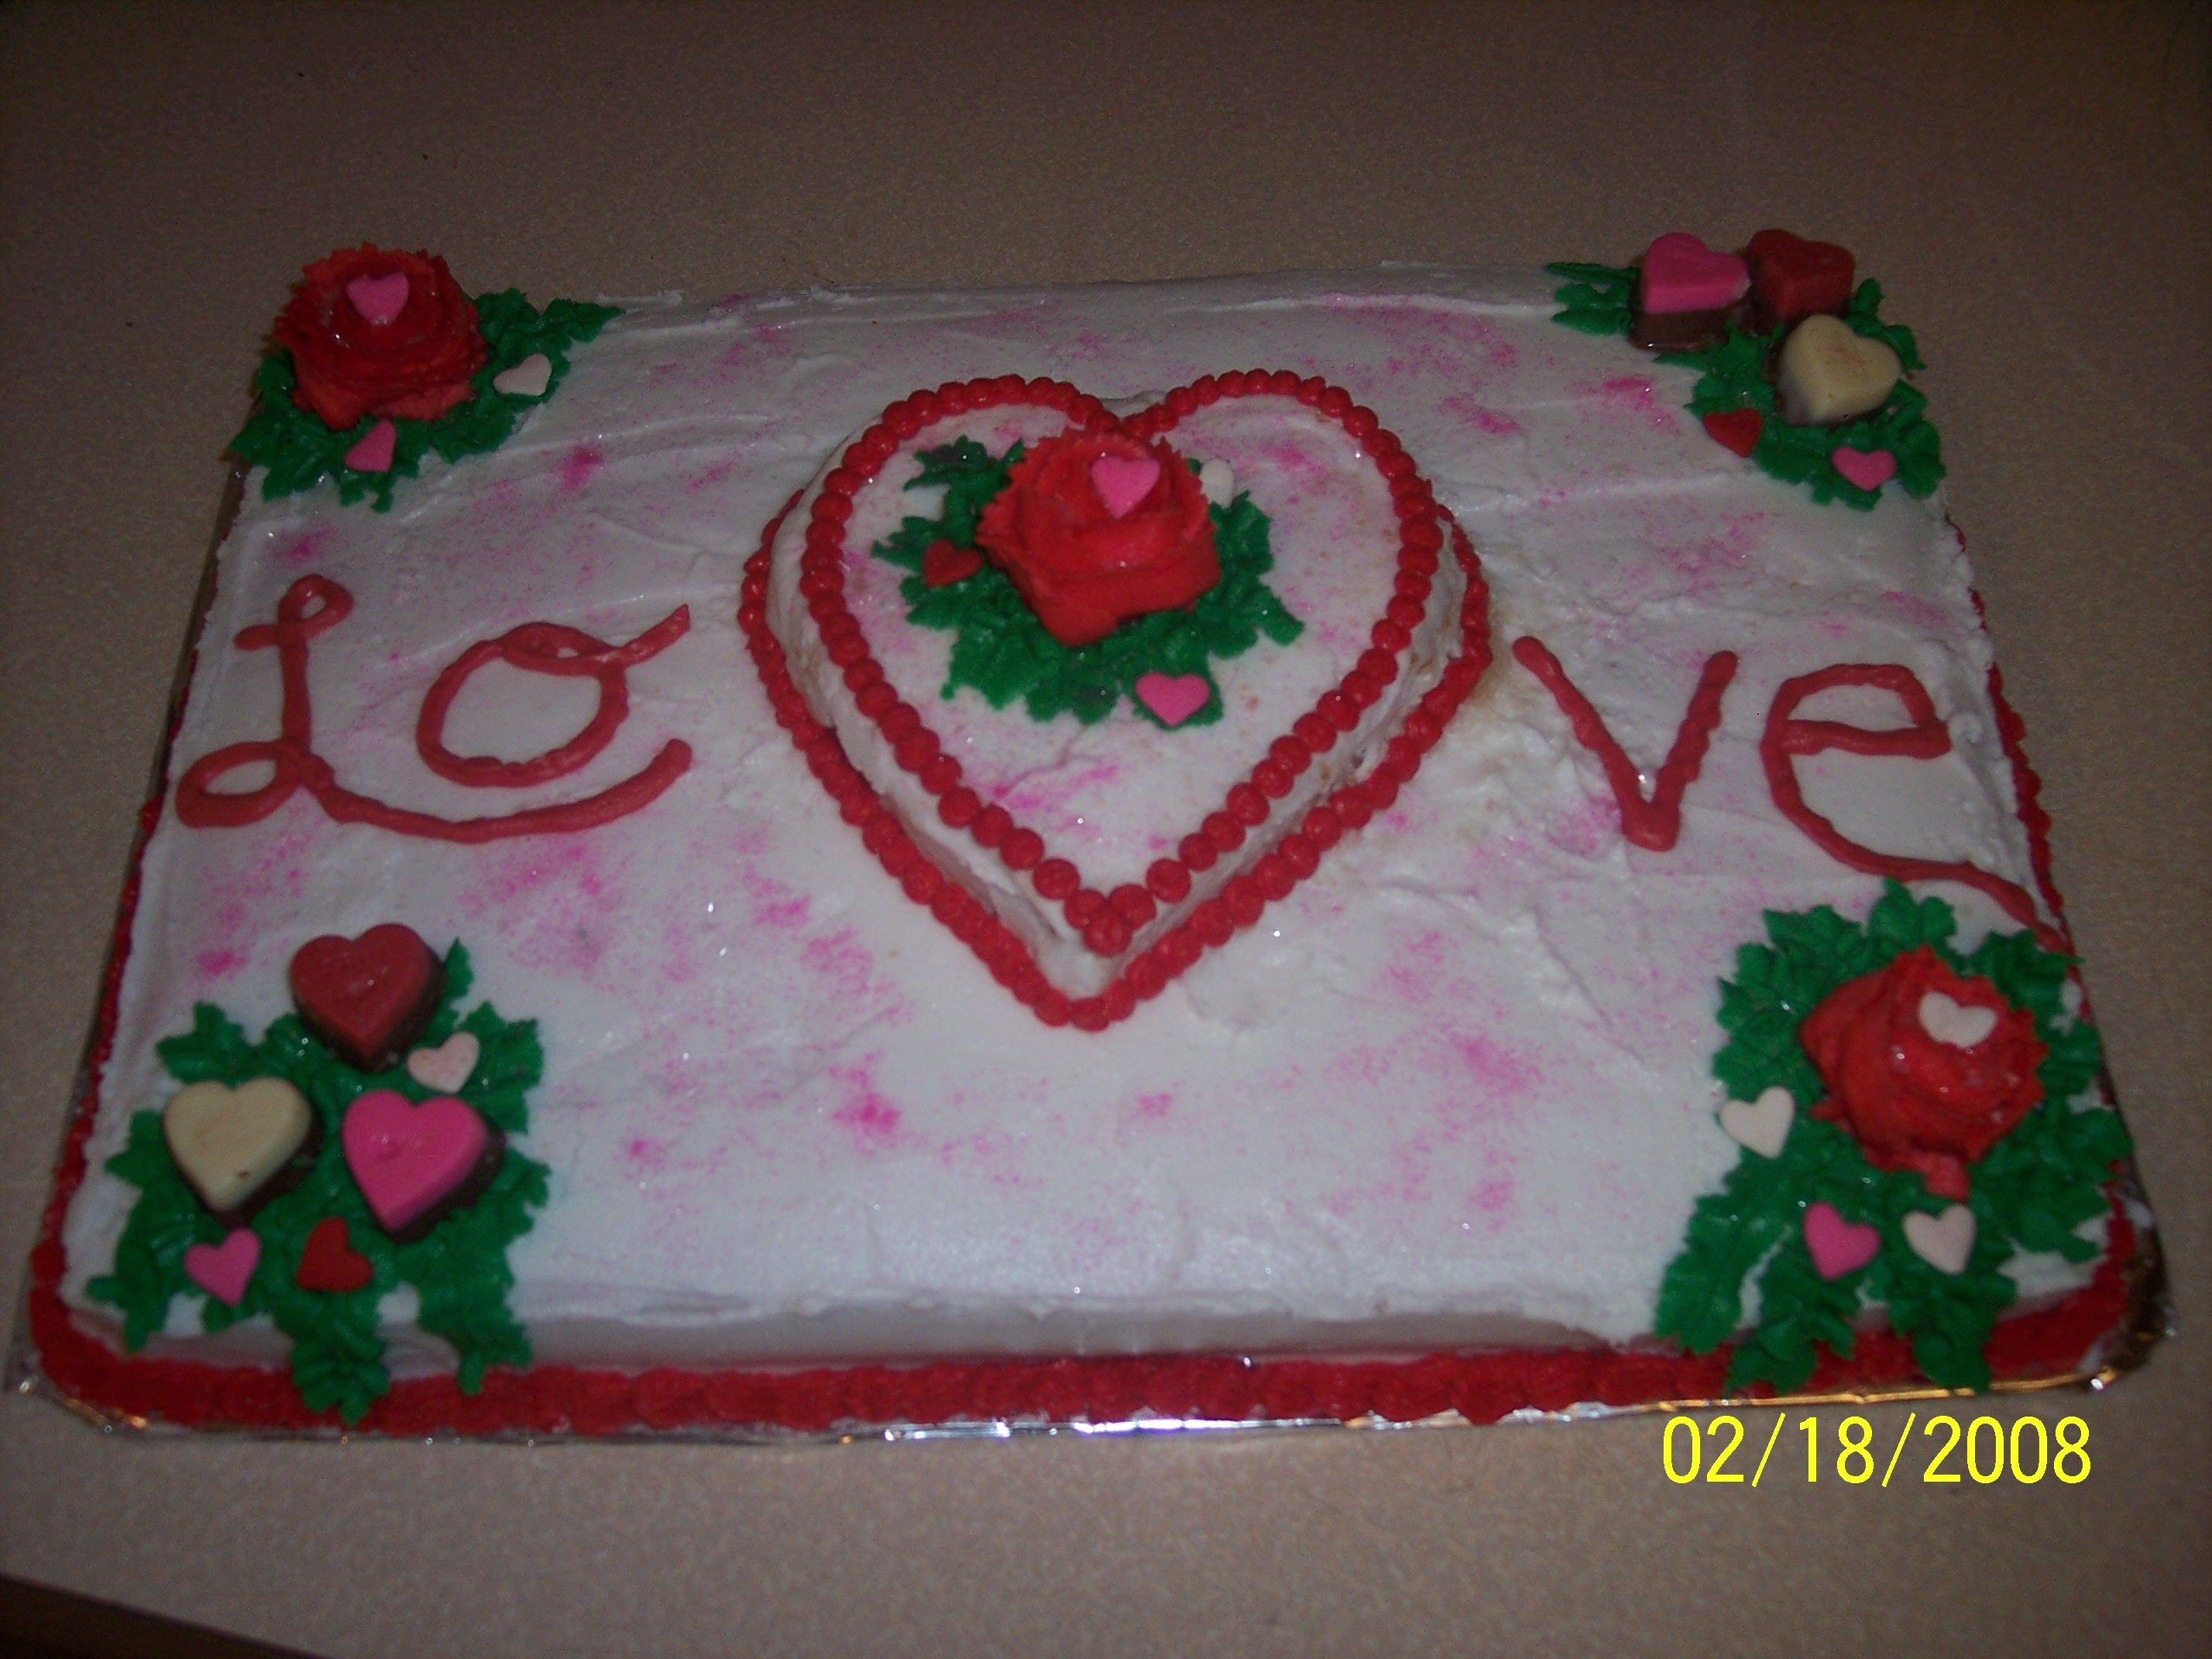 9x13 white cake with a small heart made out of white cake in center. Iced in buttercream with buttercream roses, heart sprinkles, pink luster, edible glitter and milk chocolate hearts.